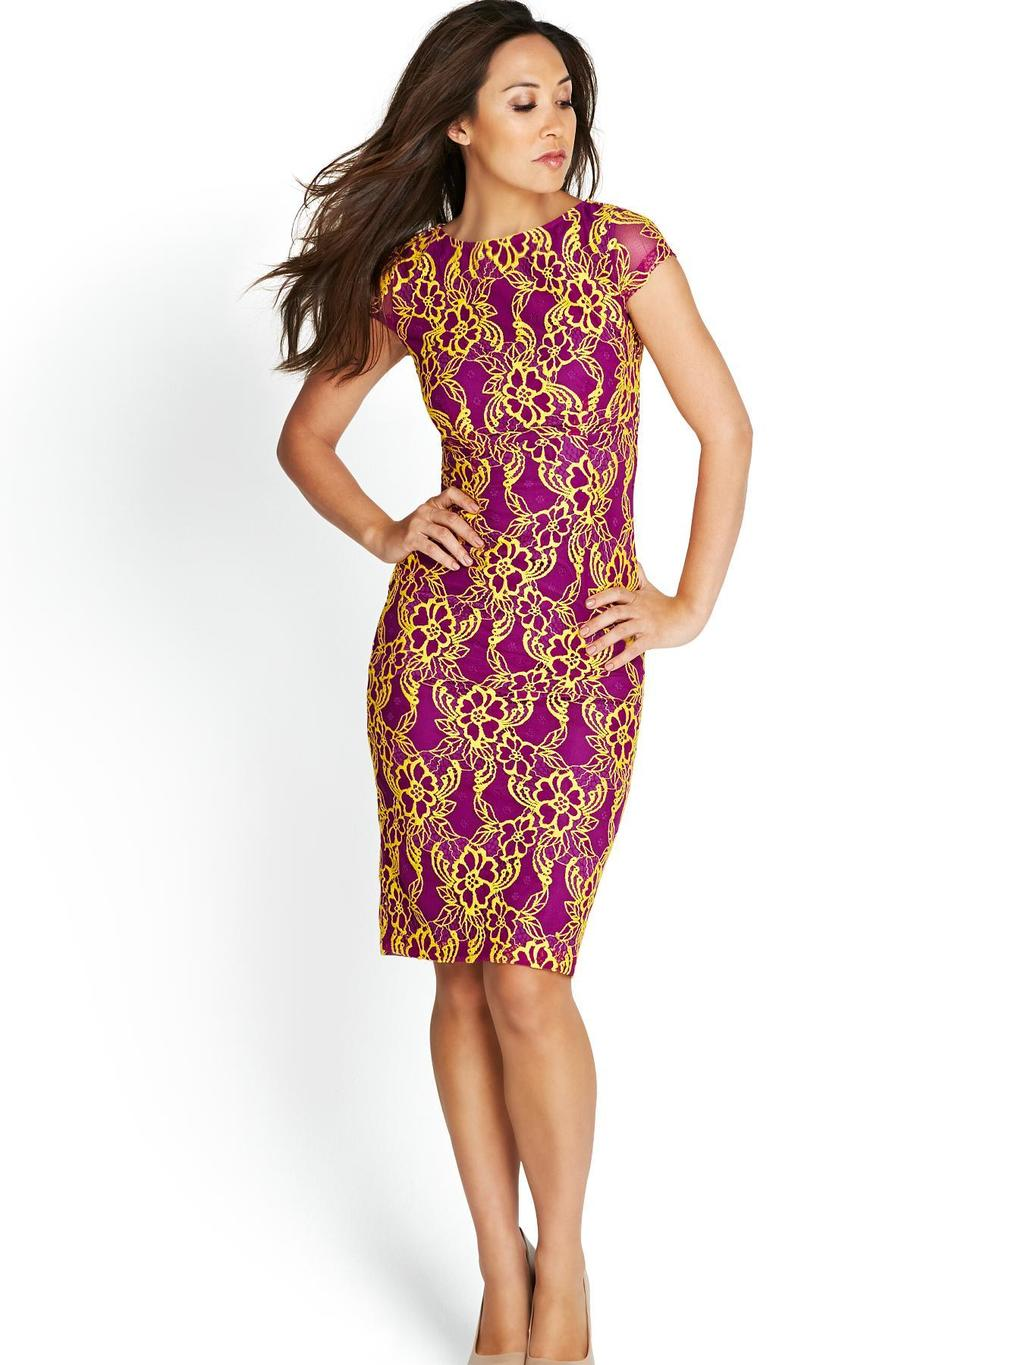 Bright Lace Pencil Dress, Purple - style: shift; neckline: round neck; sleeve style: capped; predominant colour: purple; secondary colour: gold; occasions: evening, occasion, creative work; length: just above the knee; fit: body skimming; fibres: polyester/polyamide - stretch; sleeve length: short sleeve; pattern type: fabric; pattern size: standard; pattern: patterned/print; texture group: jersey - stretchy/drapey; season: s/s 2014; trends: zesty shades